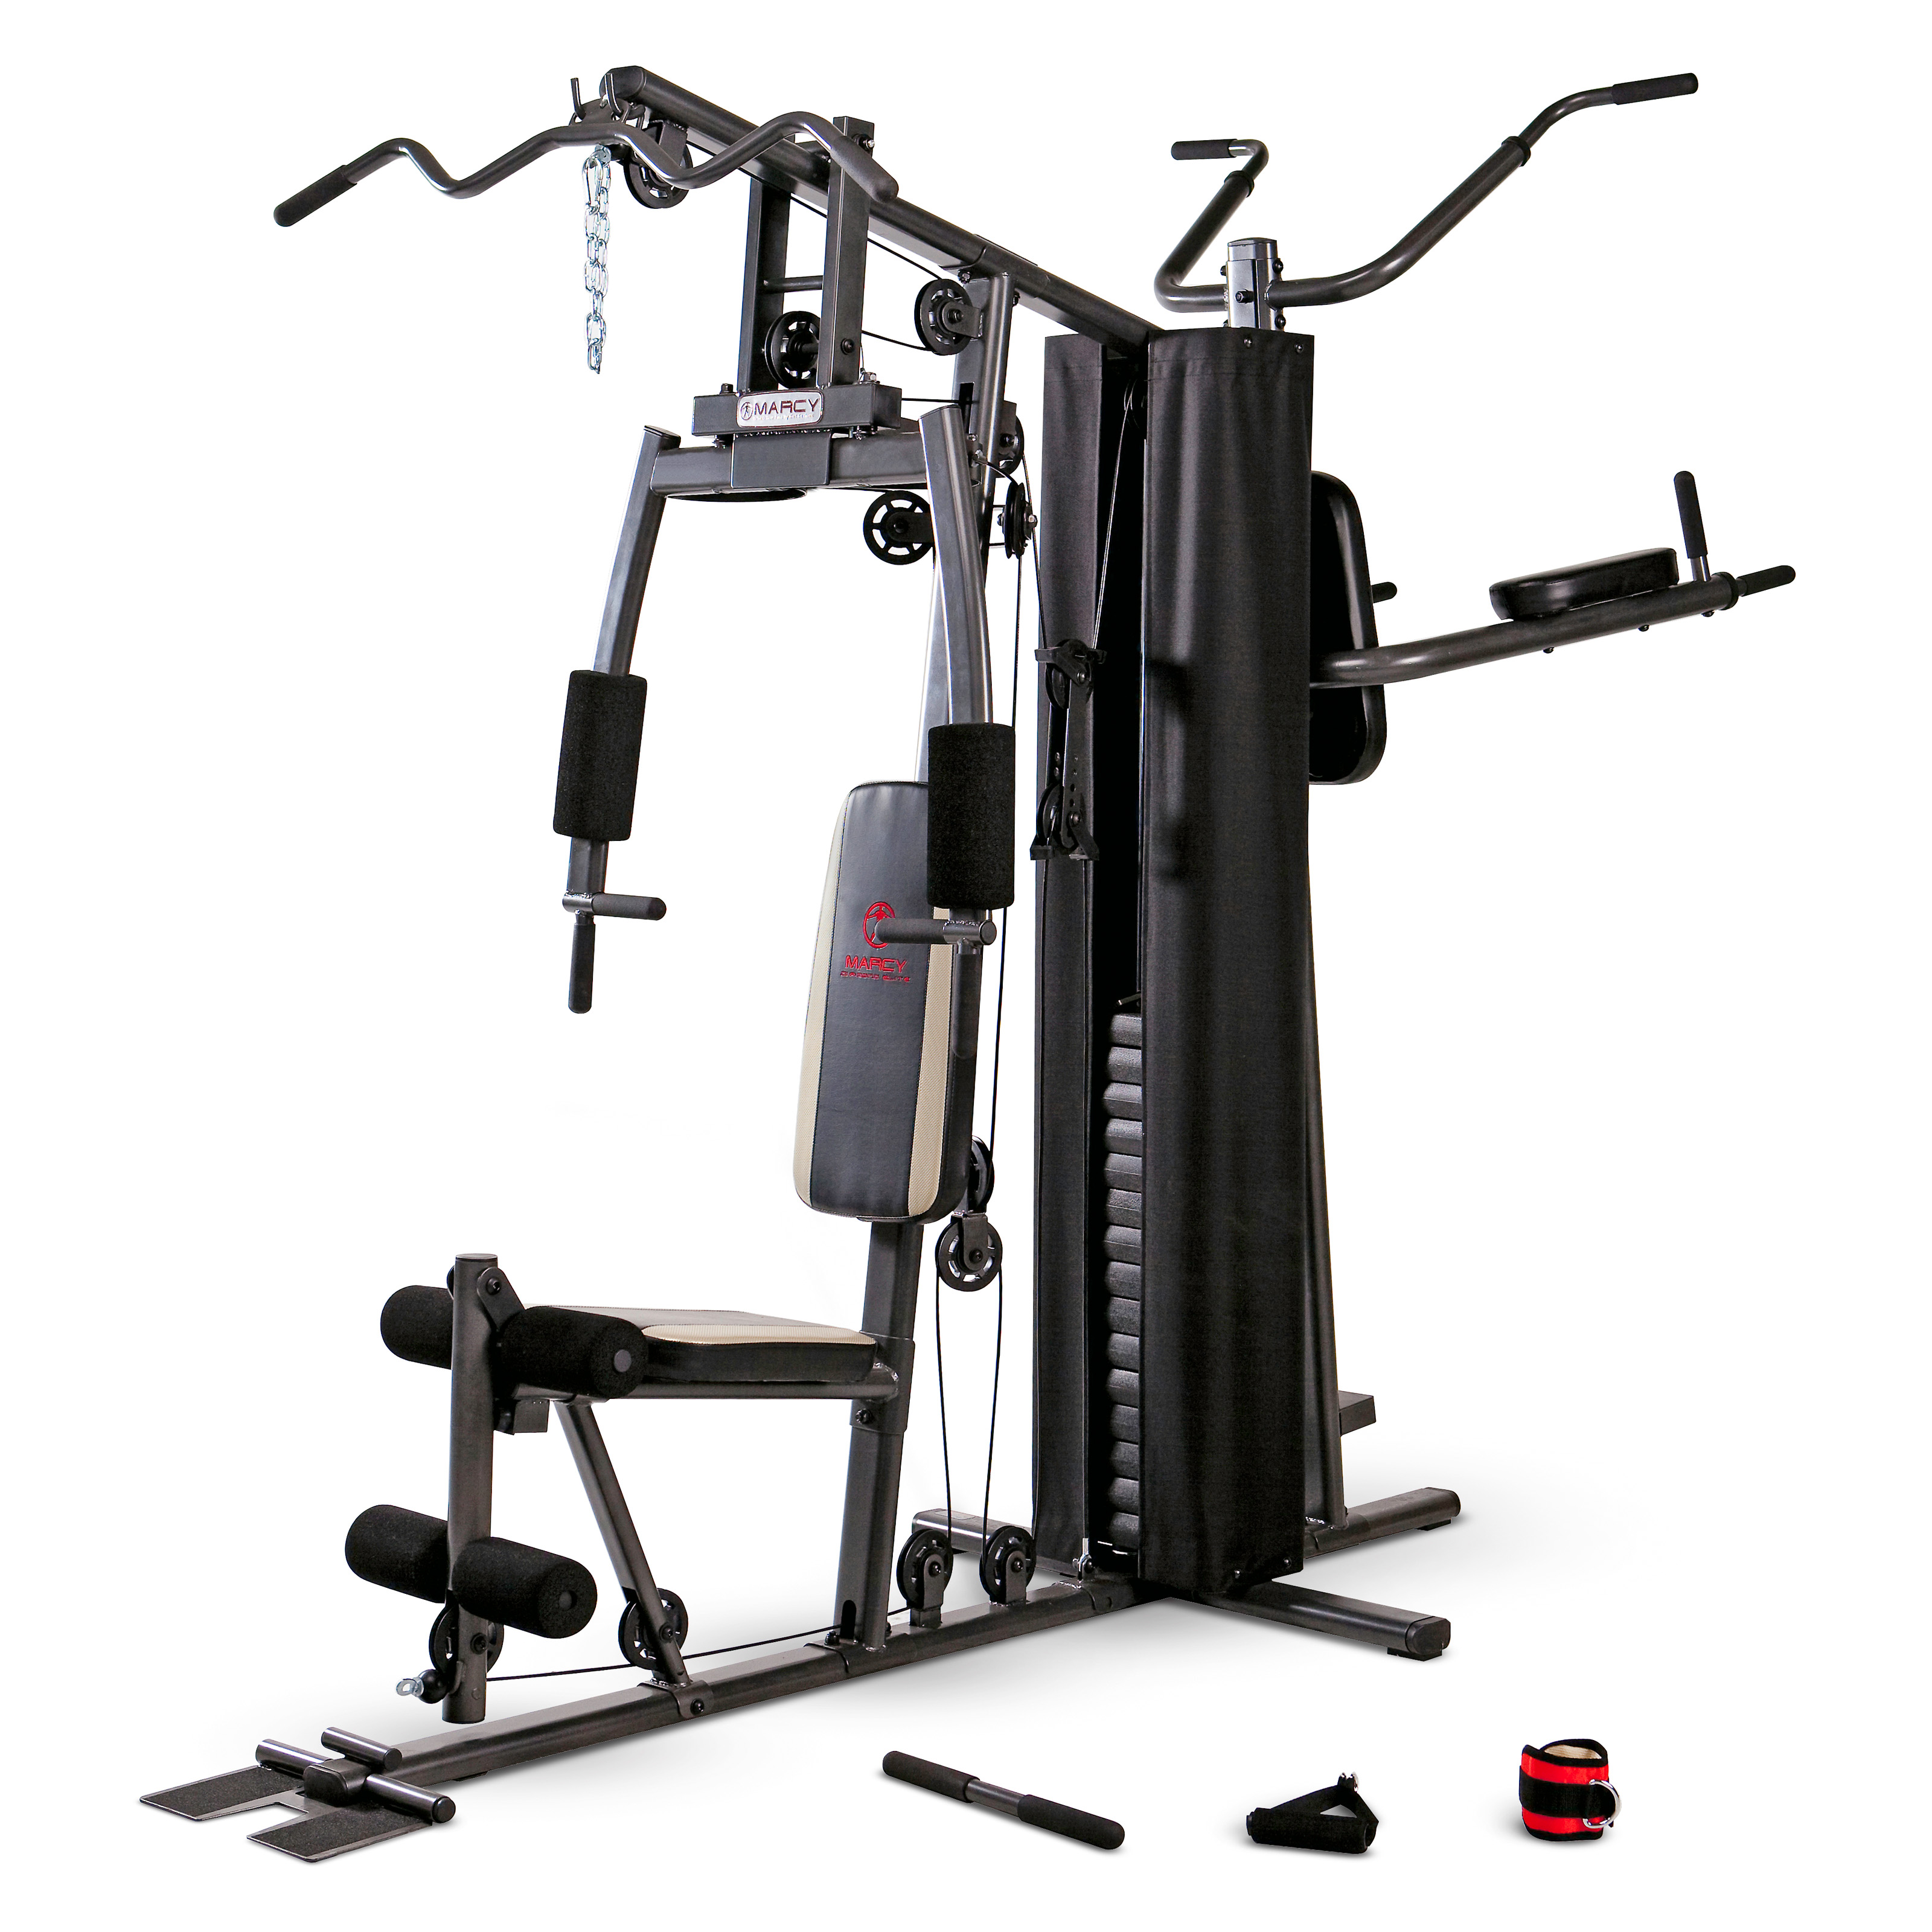 Weider Power Tower Home Gym: Sports & Fitness Equipment